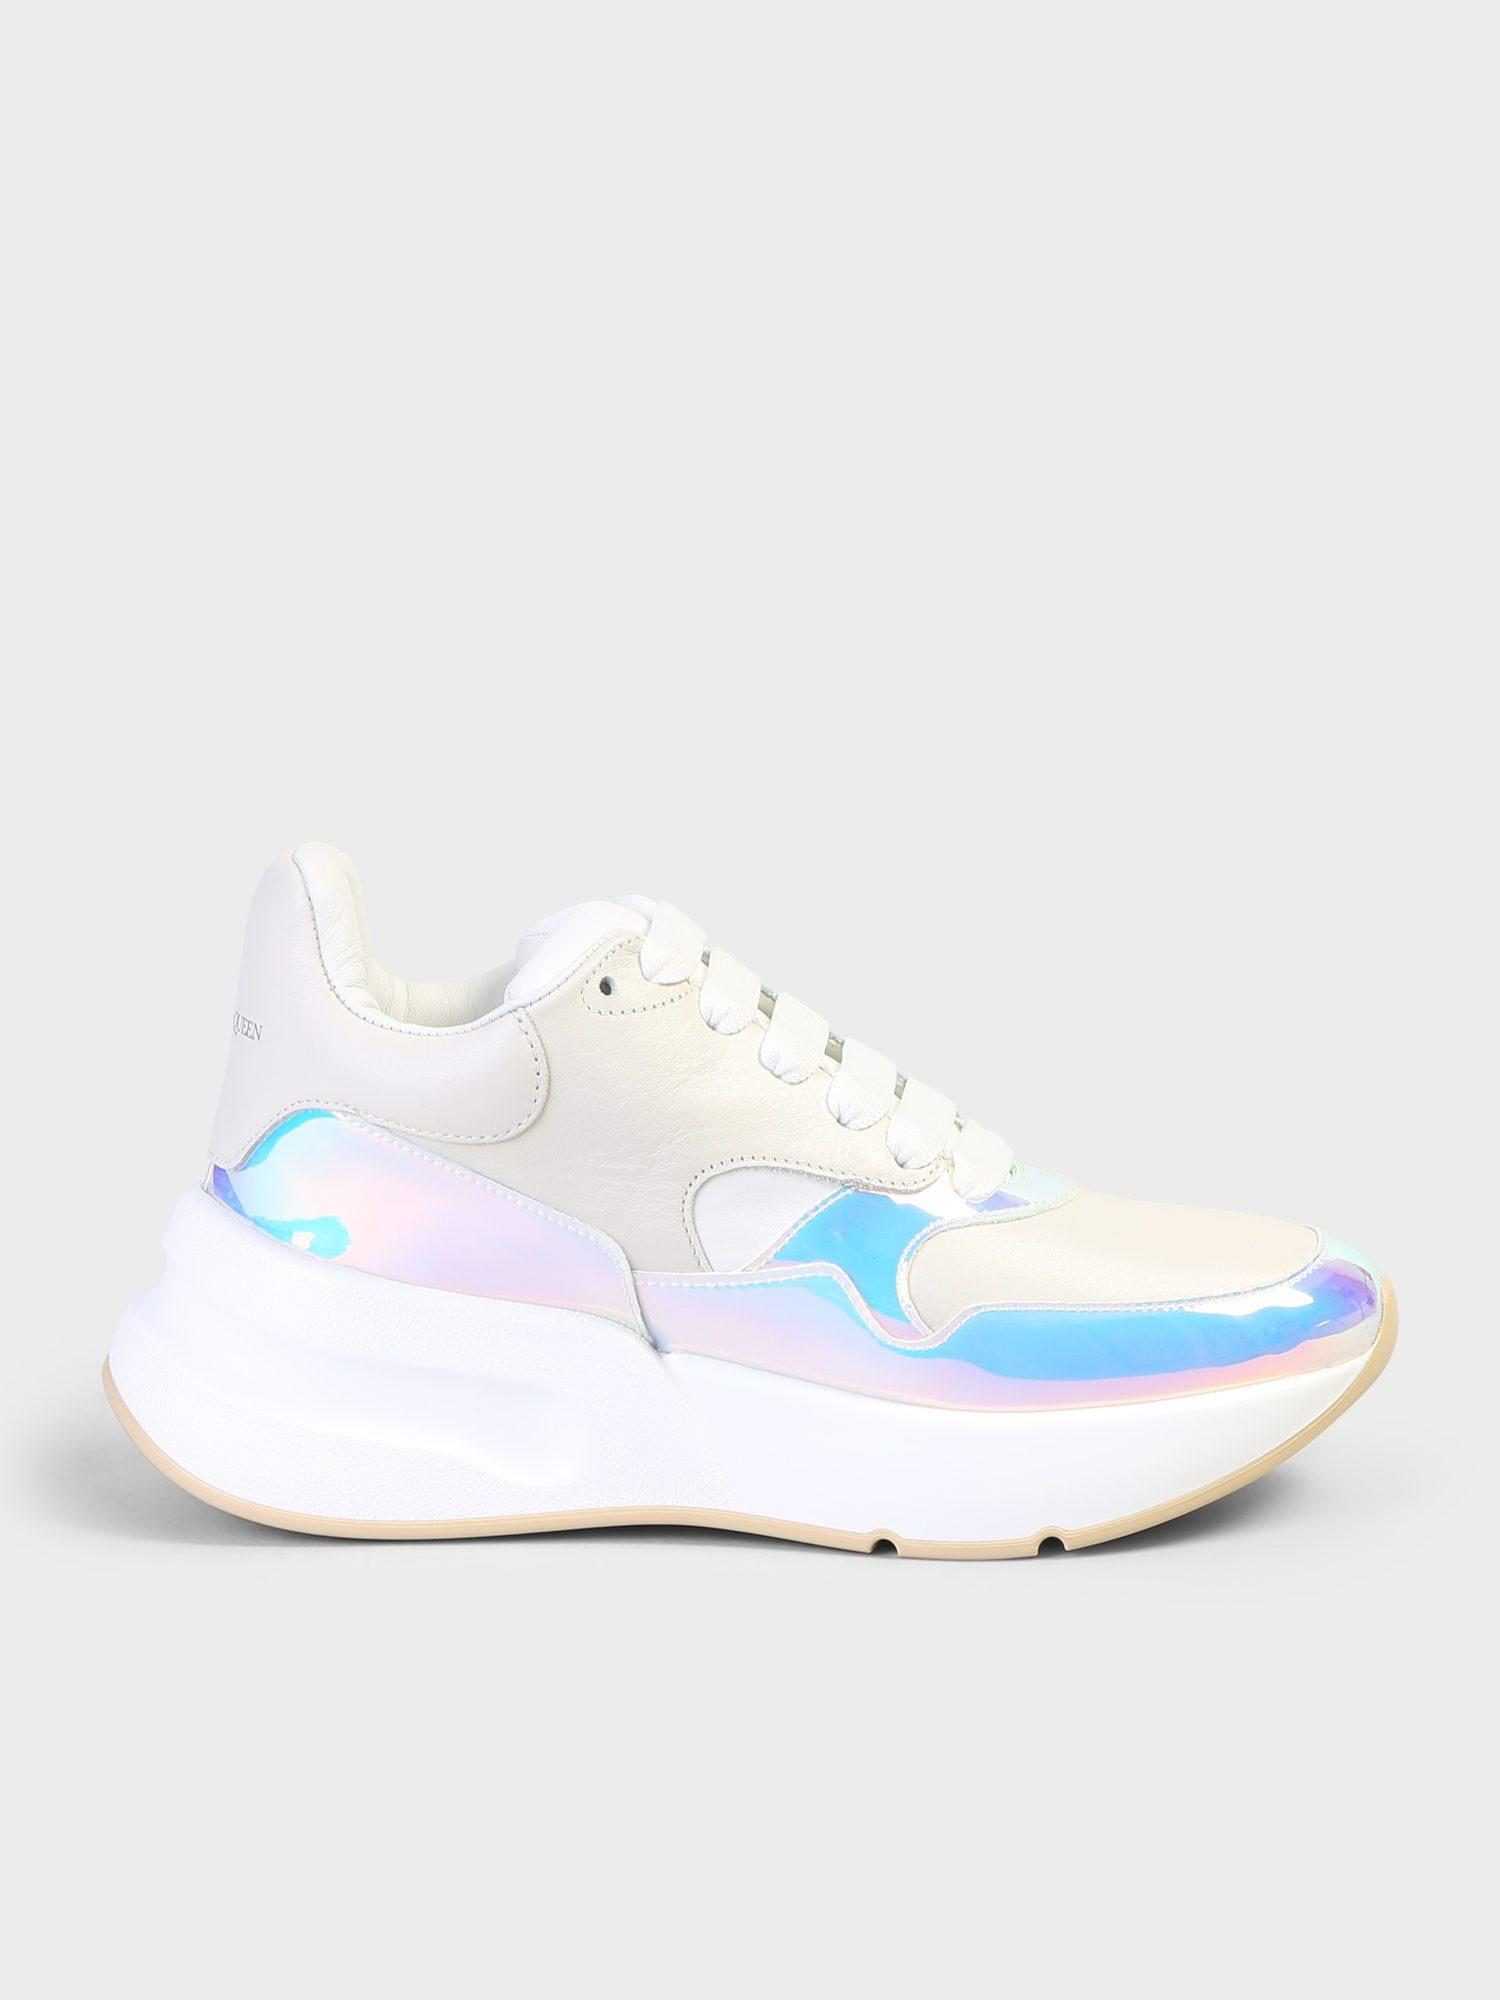 6aa94df4705 Lyst - Alexander McQueen Holographic Leather Sneakers in White - Save 3%